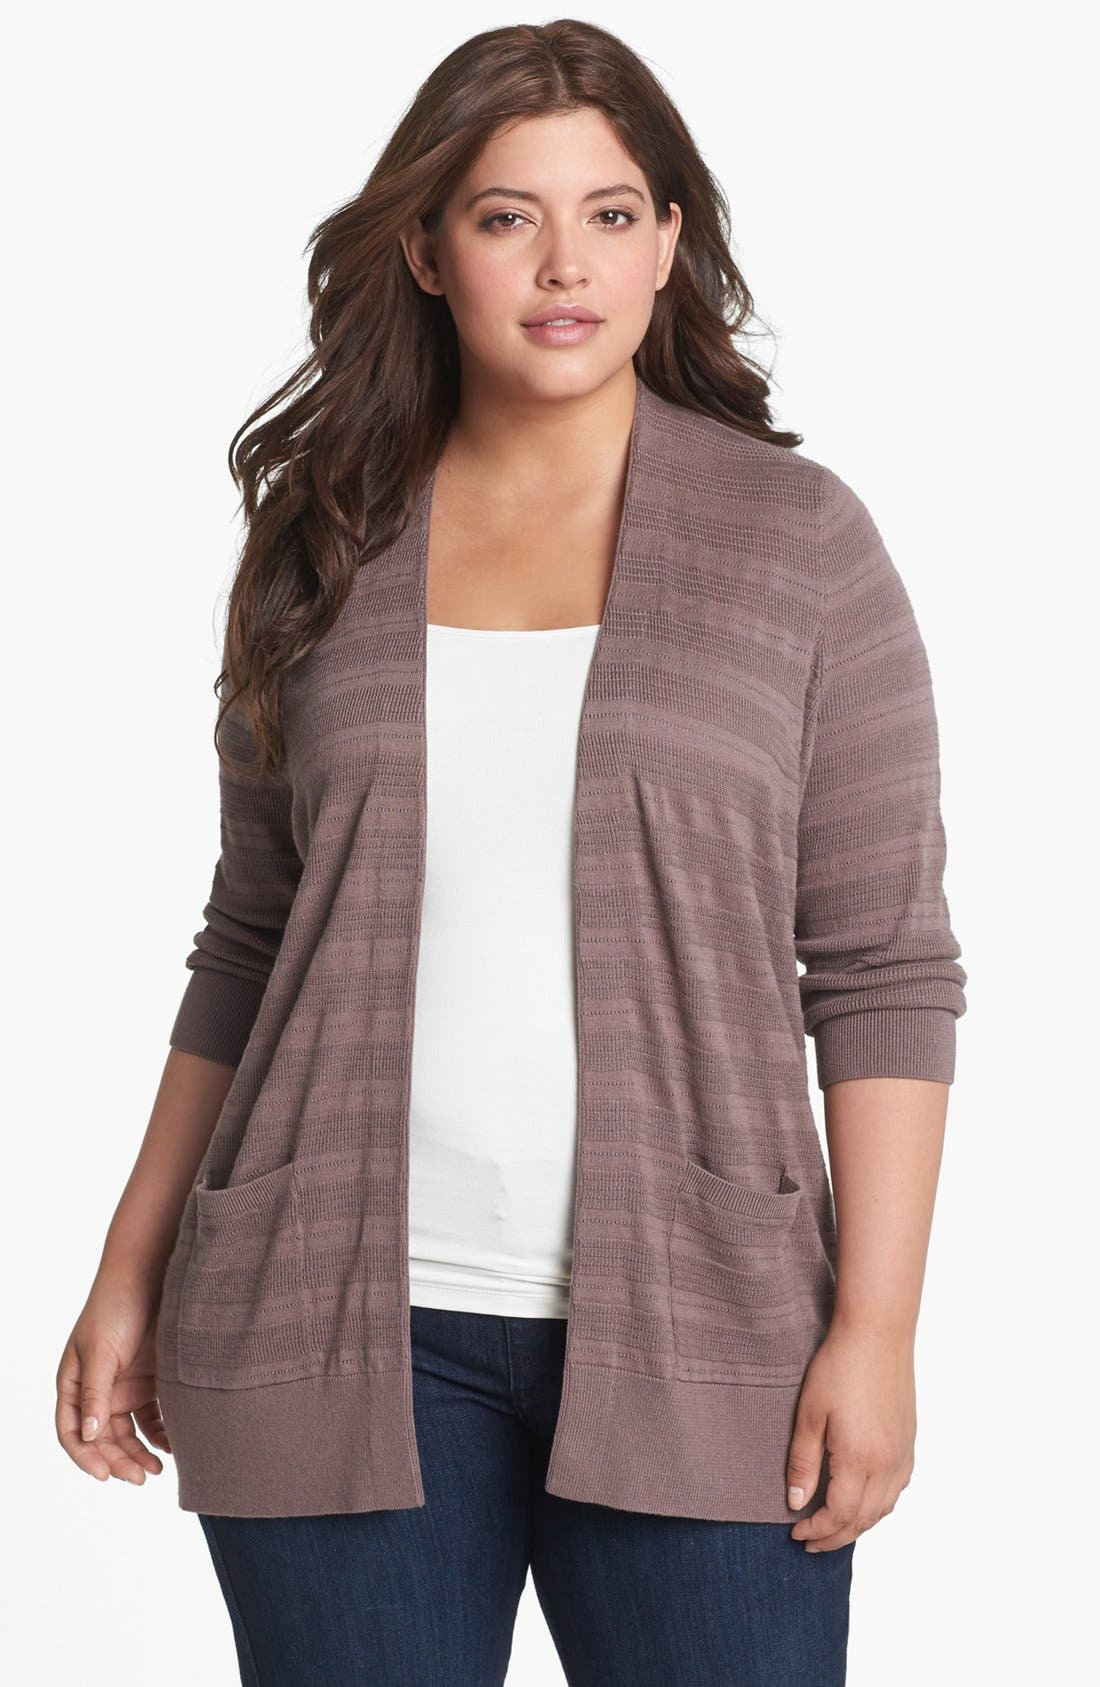 Alternate Image 1 Selected - Sejour Novelty Stitch Cardigan (Plus Size)